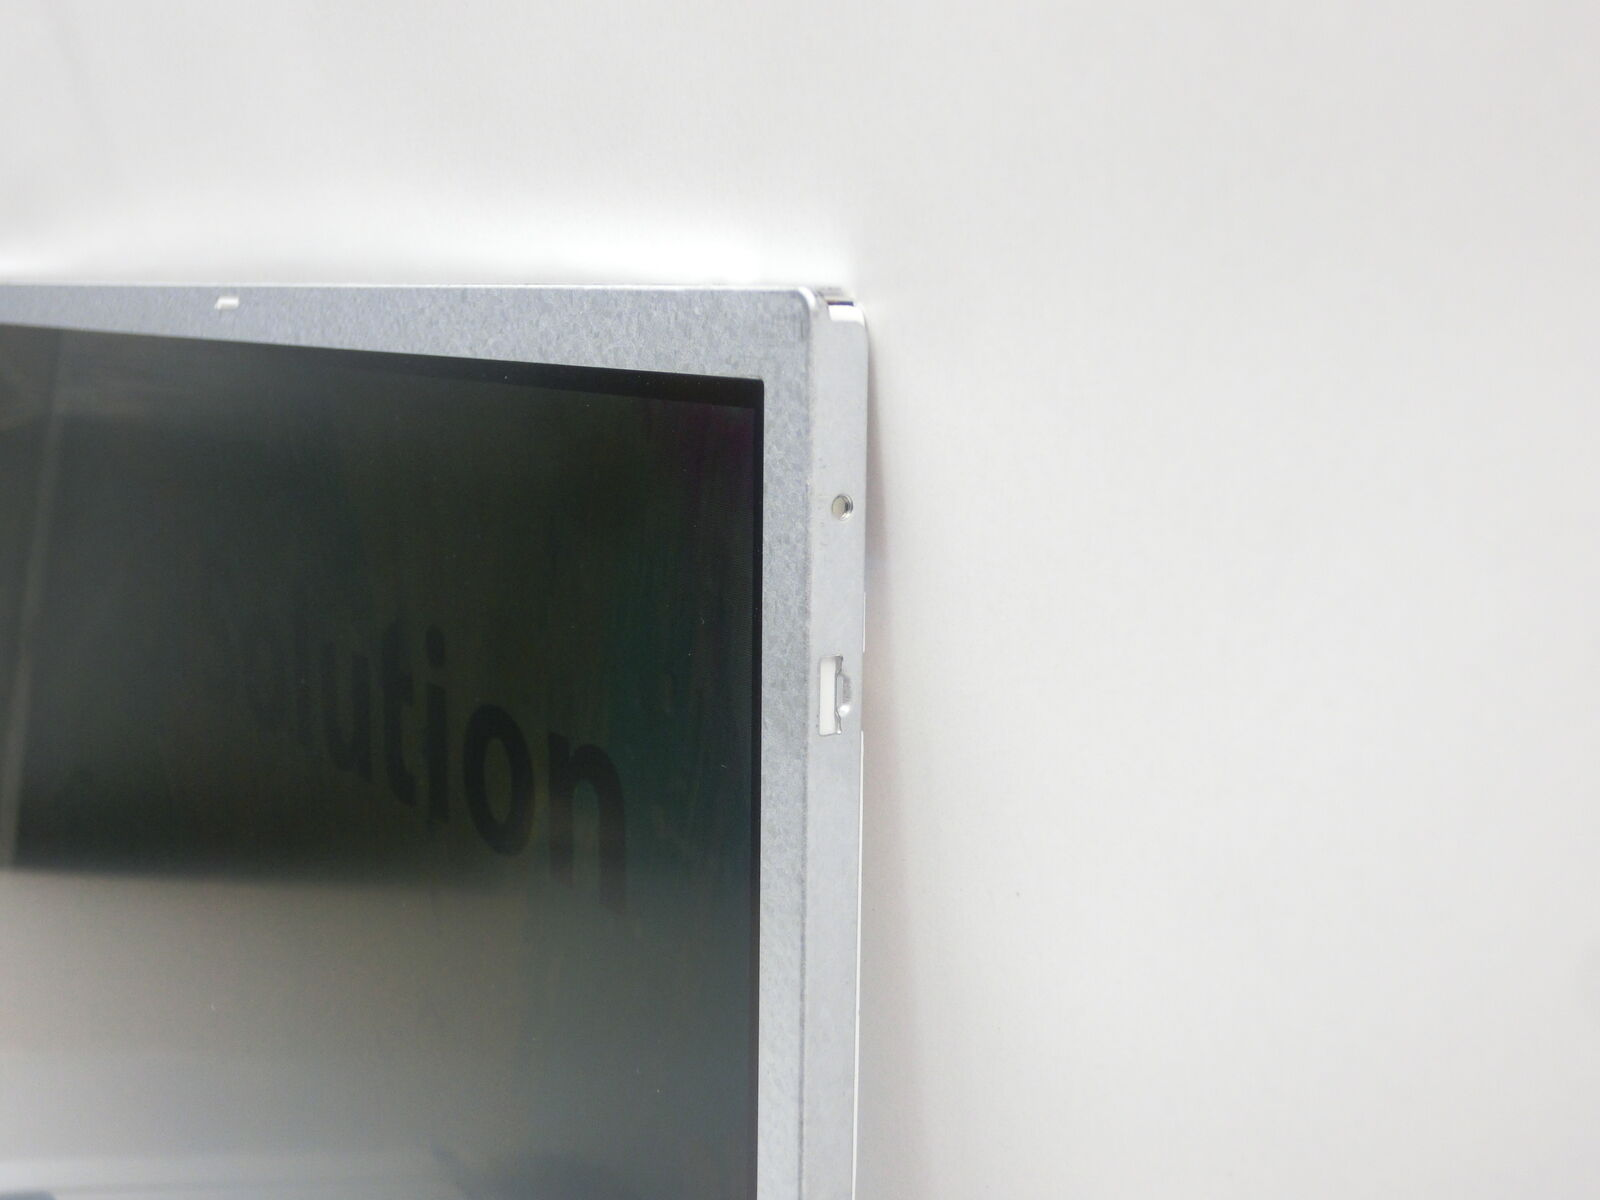 Glossy Sony Vaio pcg-71411m Display a LED SCREEN 17,3/""